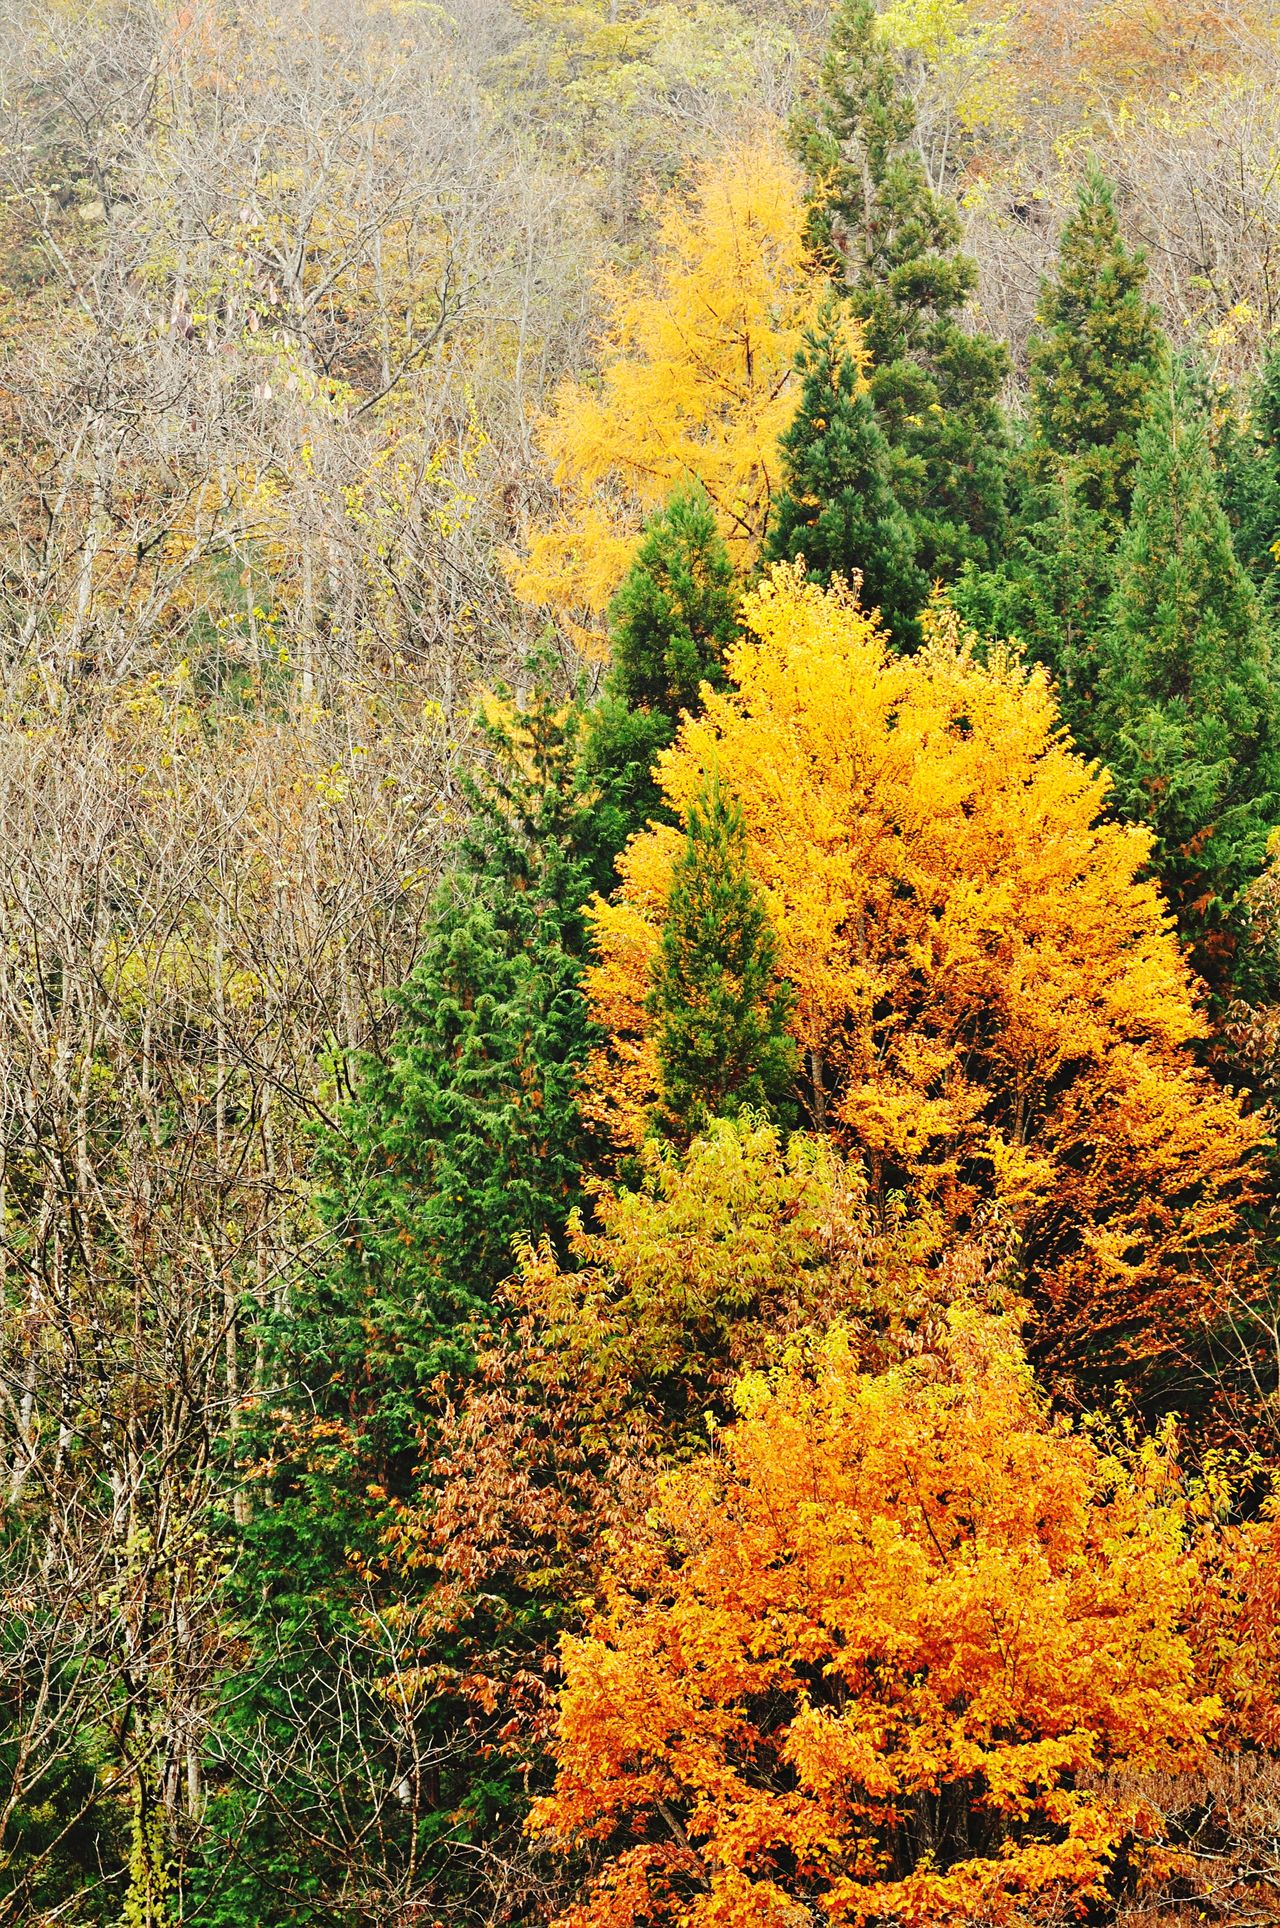 Tree Plant Outdoors Nature Yellow Beauty In Nature No People Day Leafs Autumn